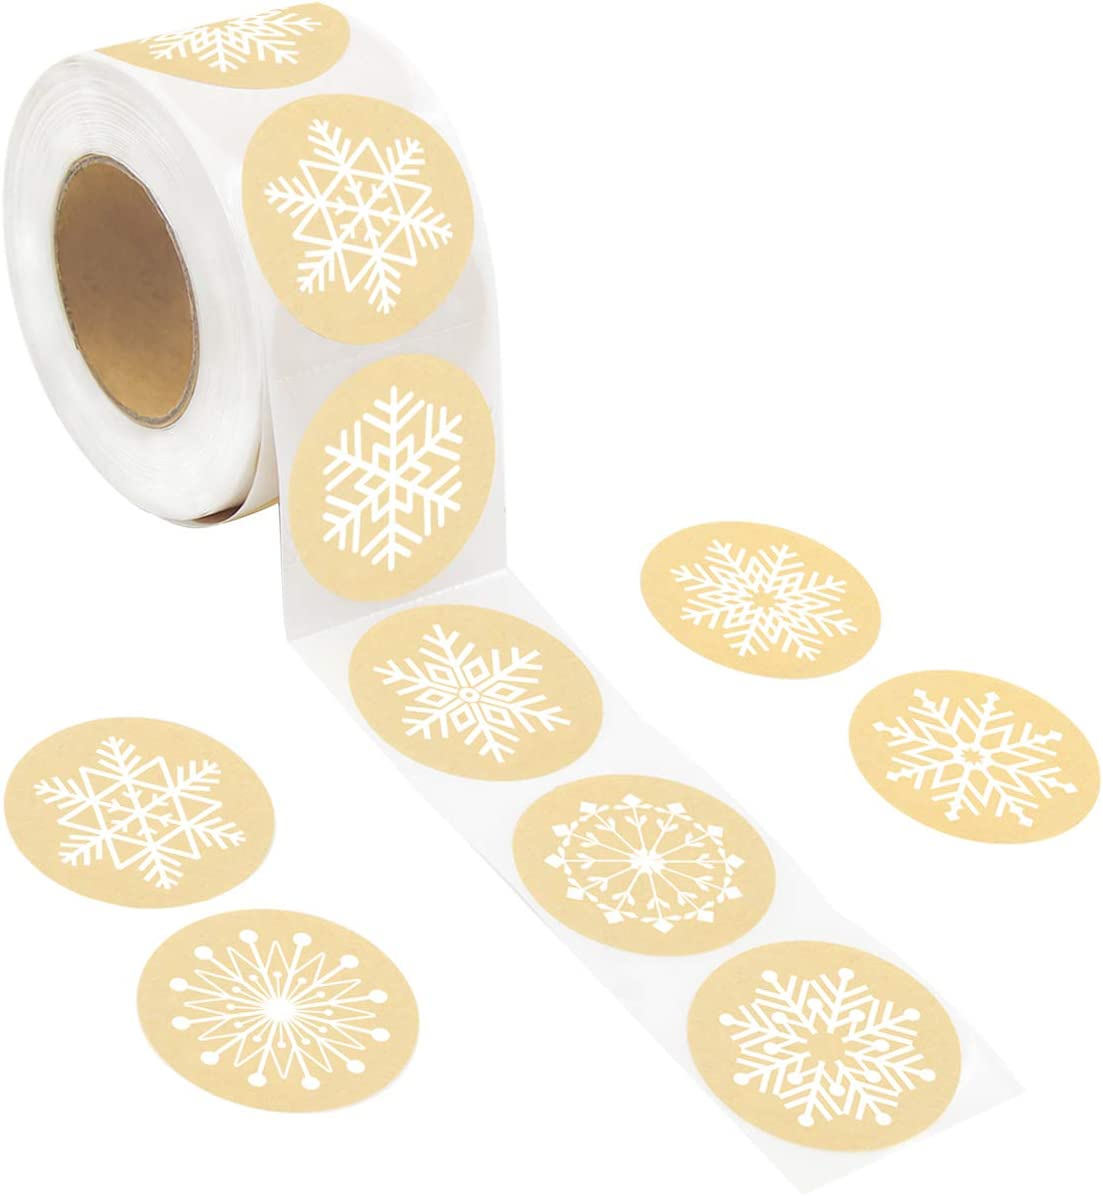 Snowflakes Christmas Stickers 8 Designs 500Pcs for Office School Holiday Party Supplies